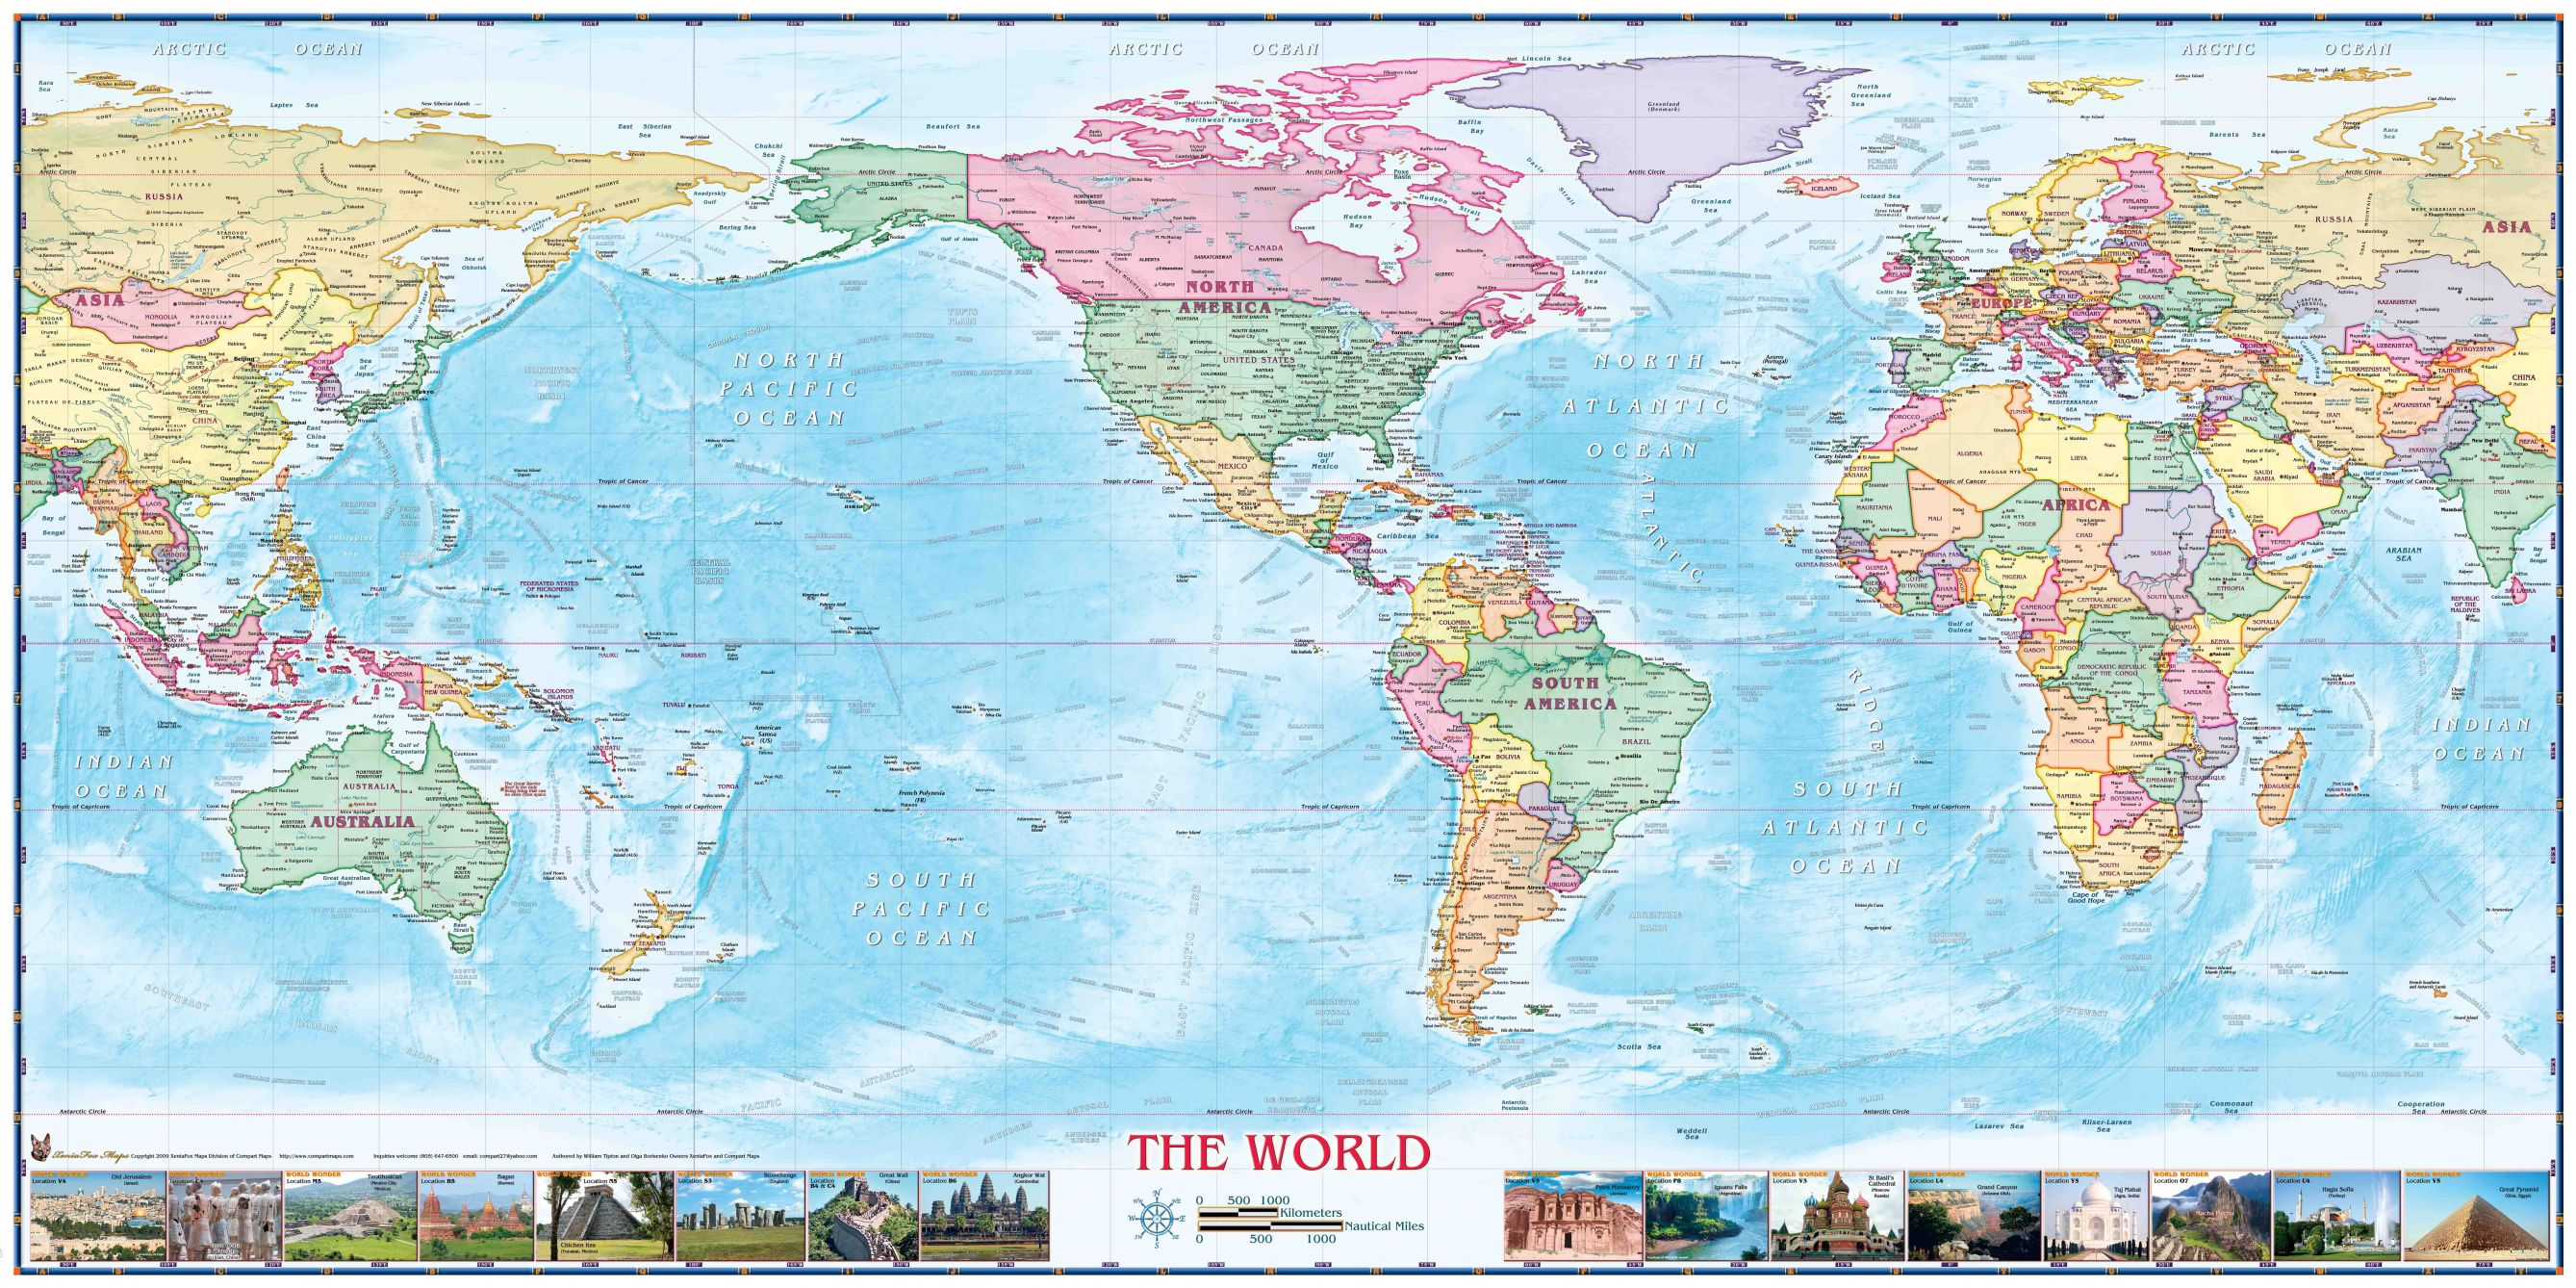 World Political Map Blank Template Imgflip - World political map blank